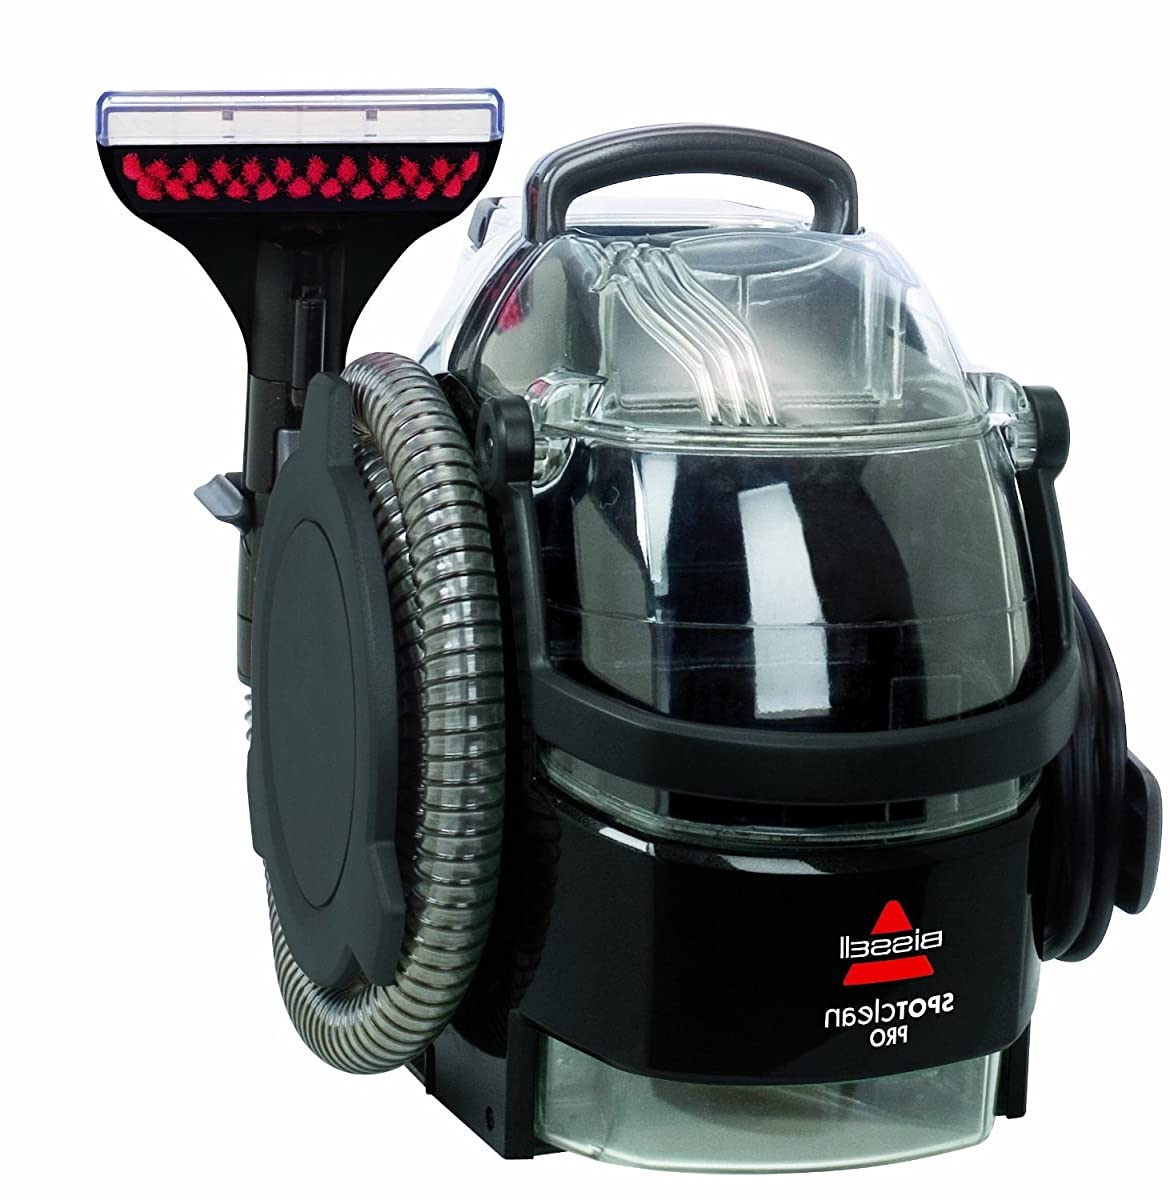 Bissell 3624 Hose Professional Spot Cleaner, Deep Clean